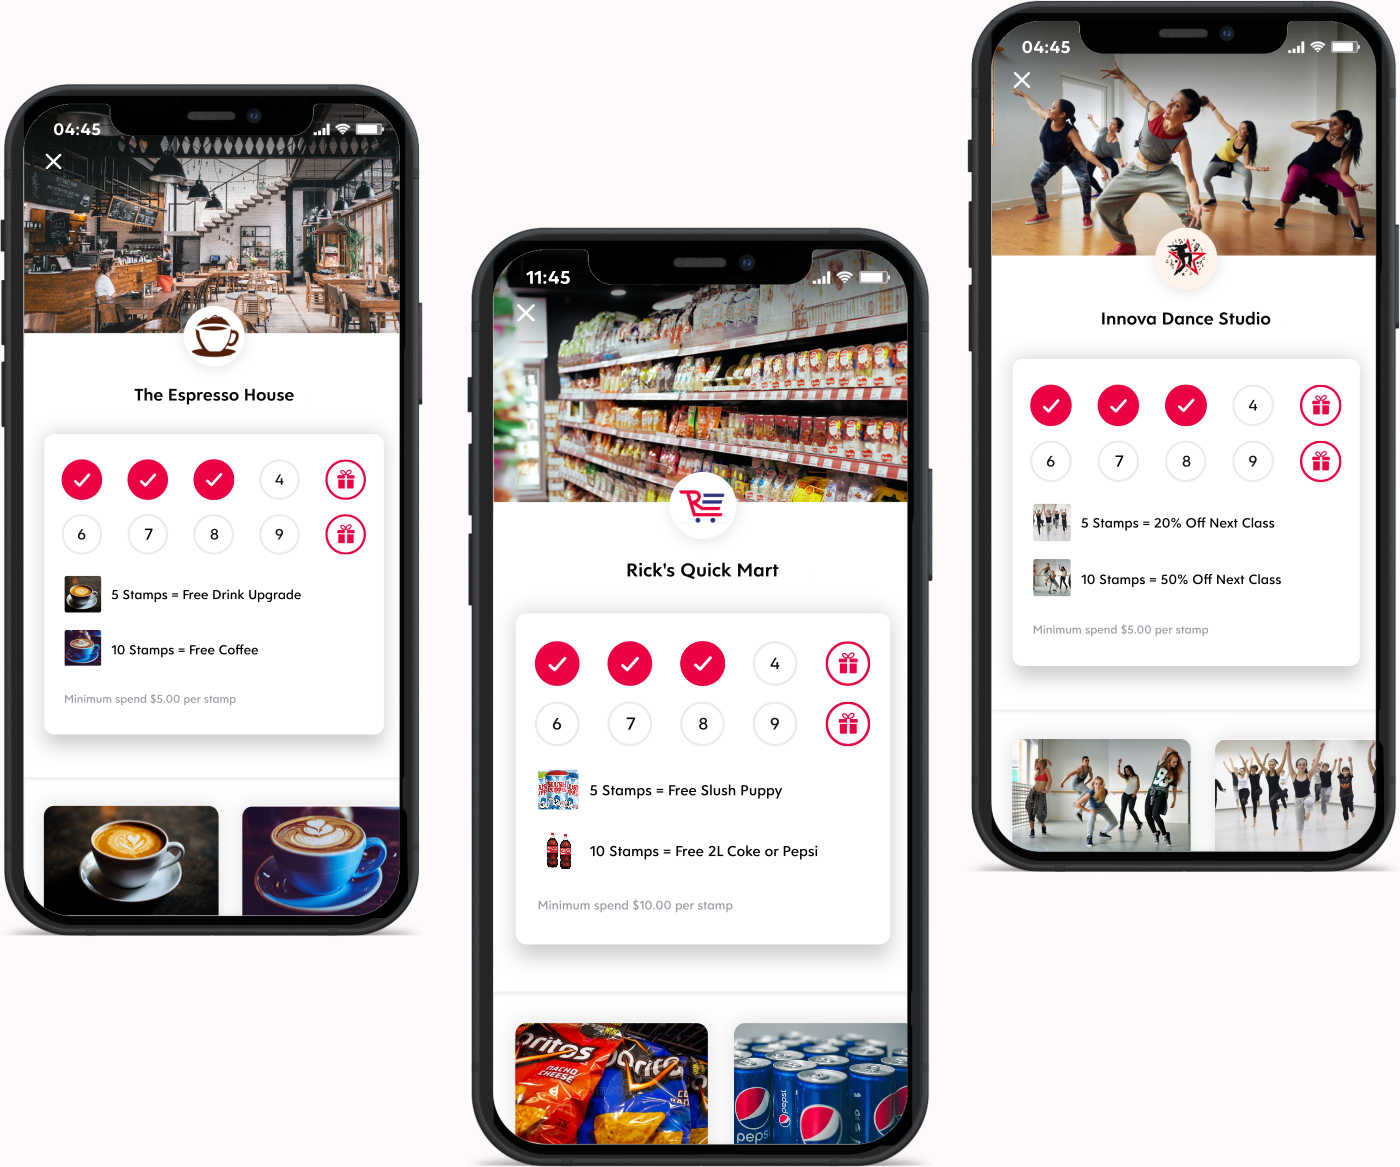 Screenshots of Flex Rewards Digital Loyalty Cards for Coffee Shop Convenience Store and Dance Studio